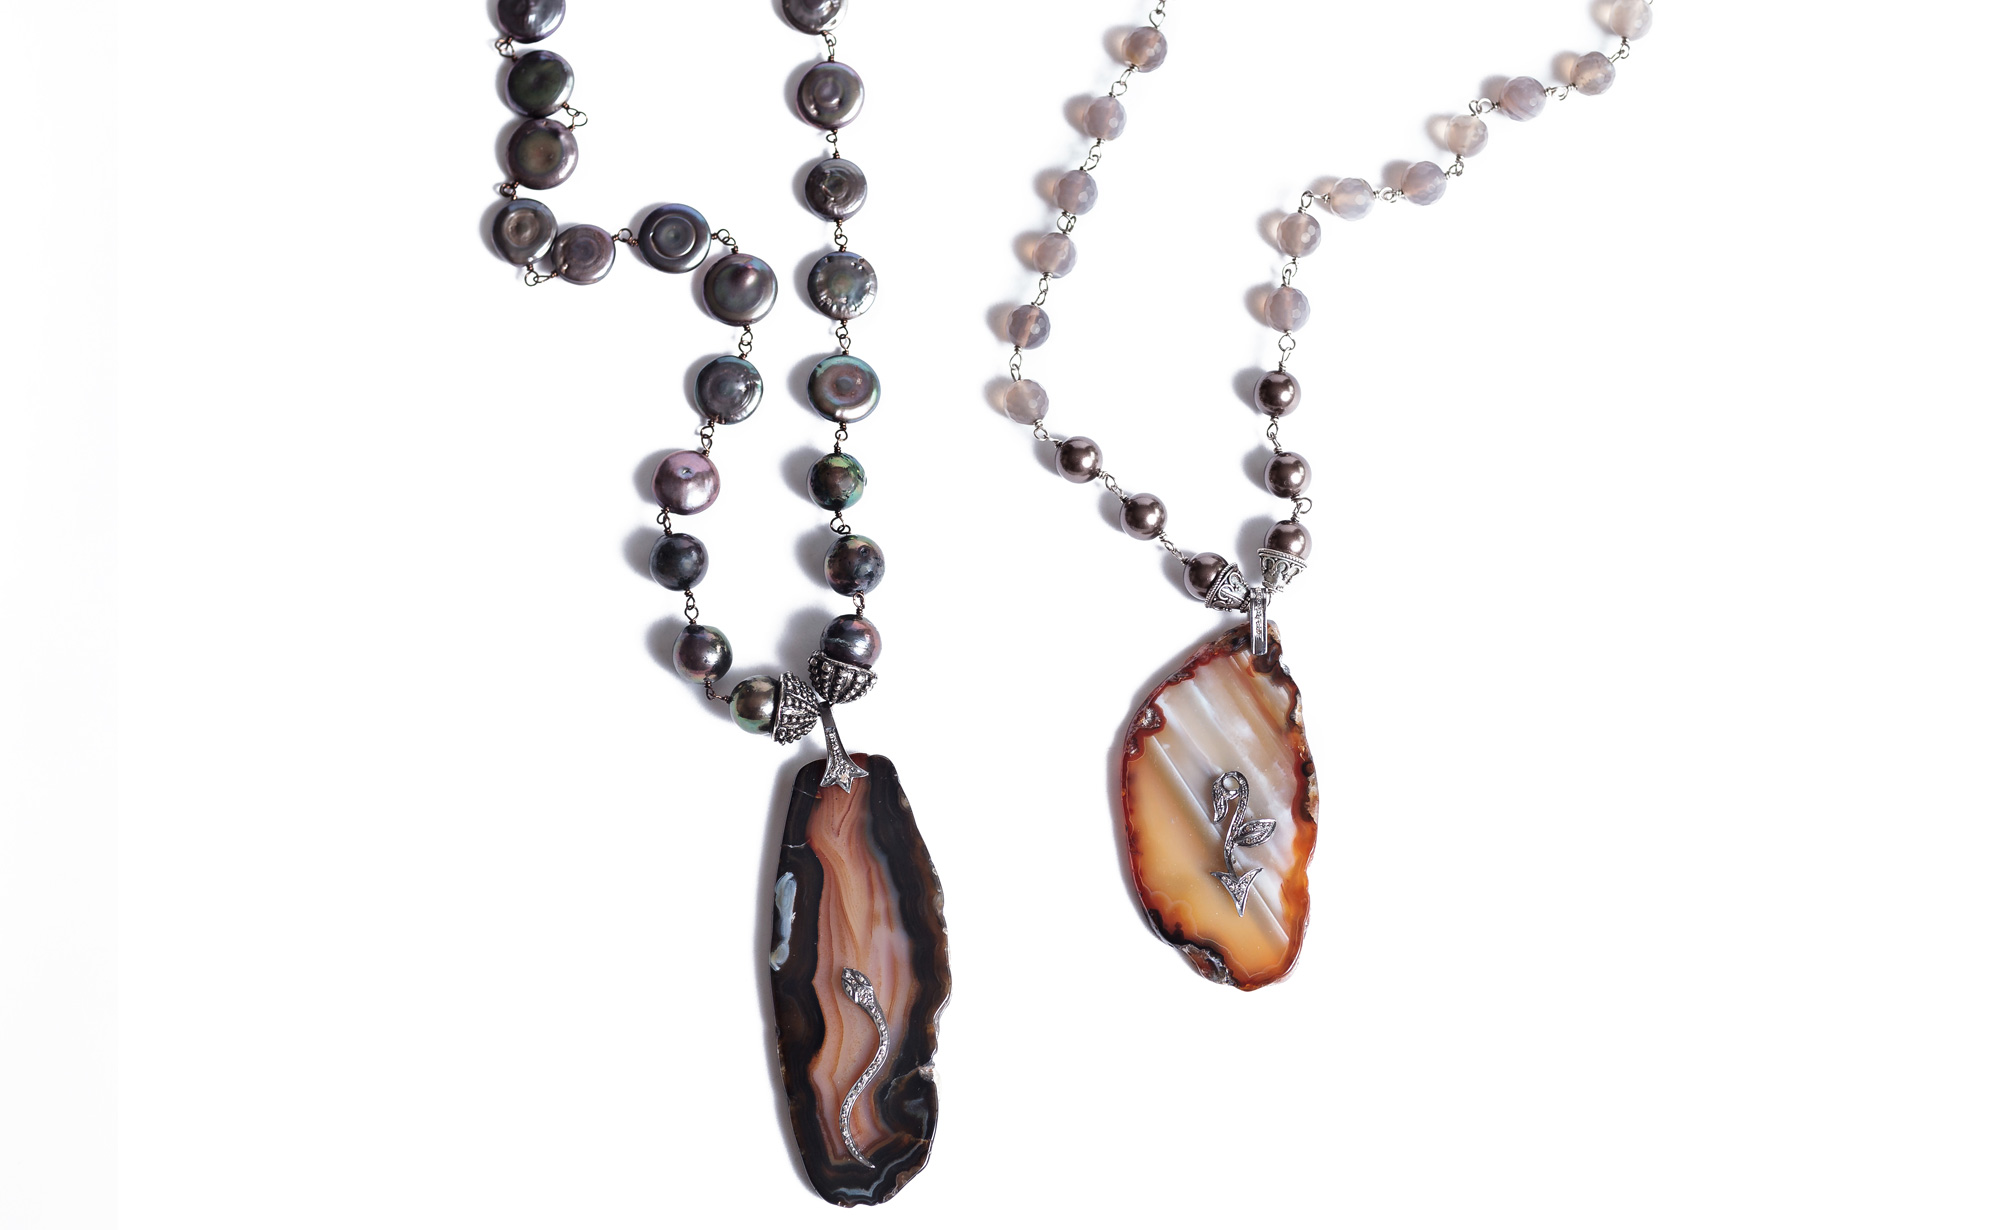 You might have liked our Facebook page or followed us on Instagram or Pinterest. If so, you may have seen our latest post featuring these fabulous diamond embellished agate necklaces!